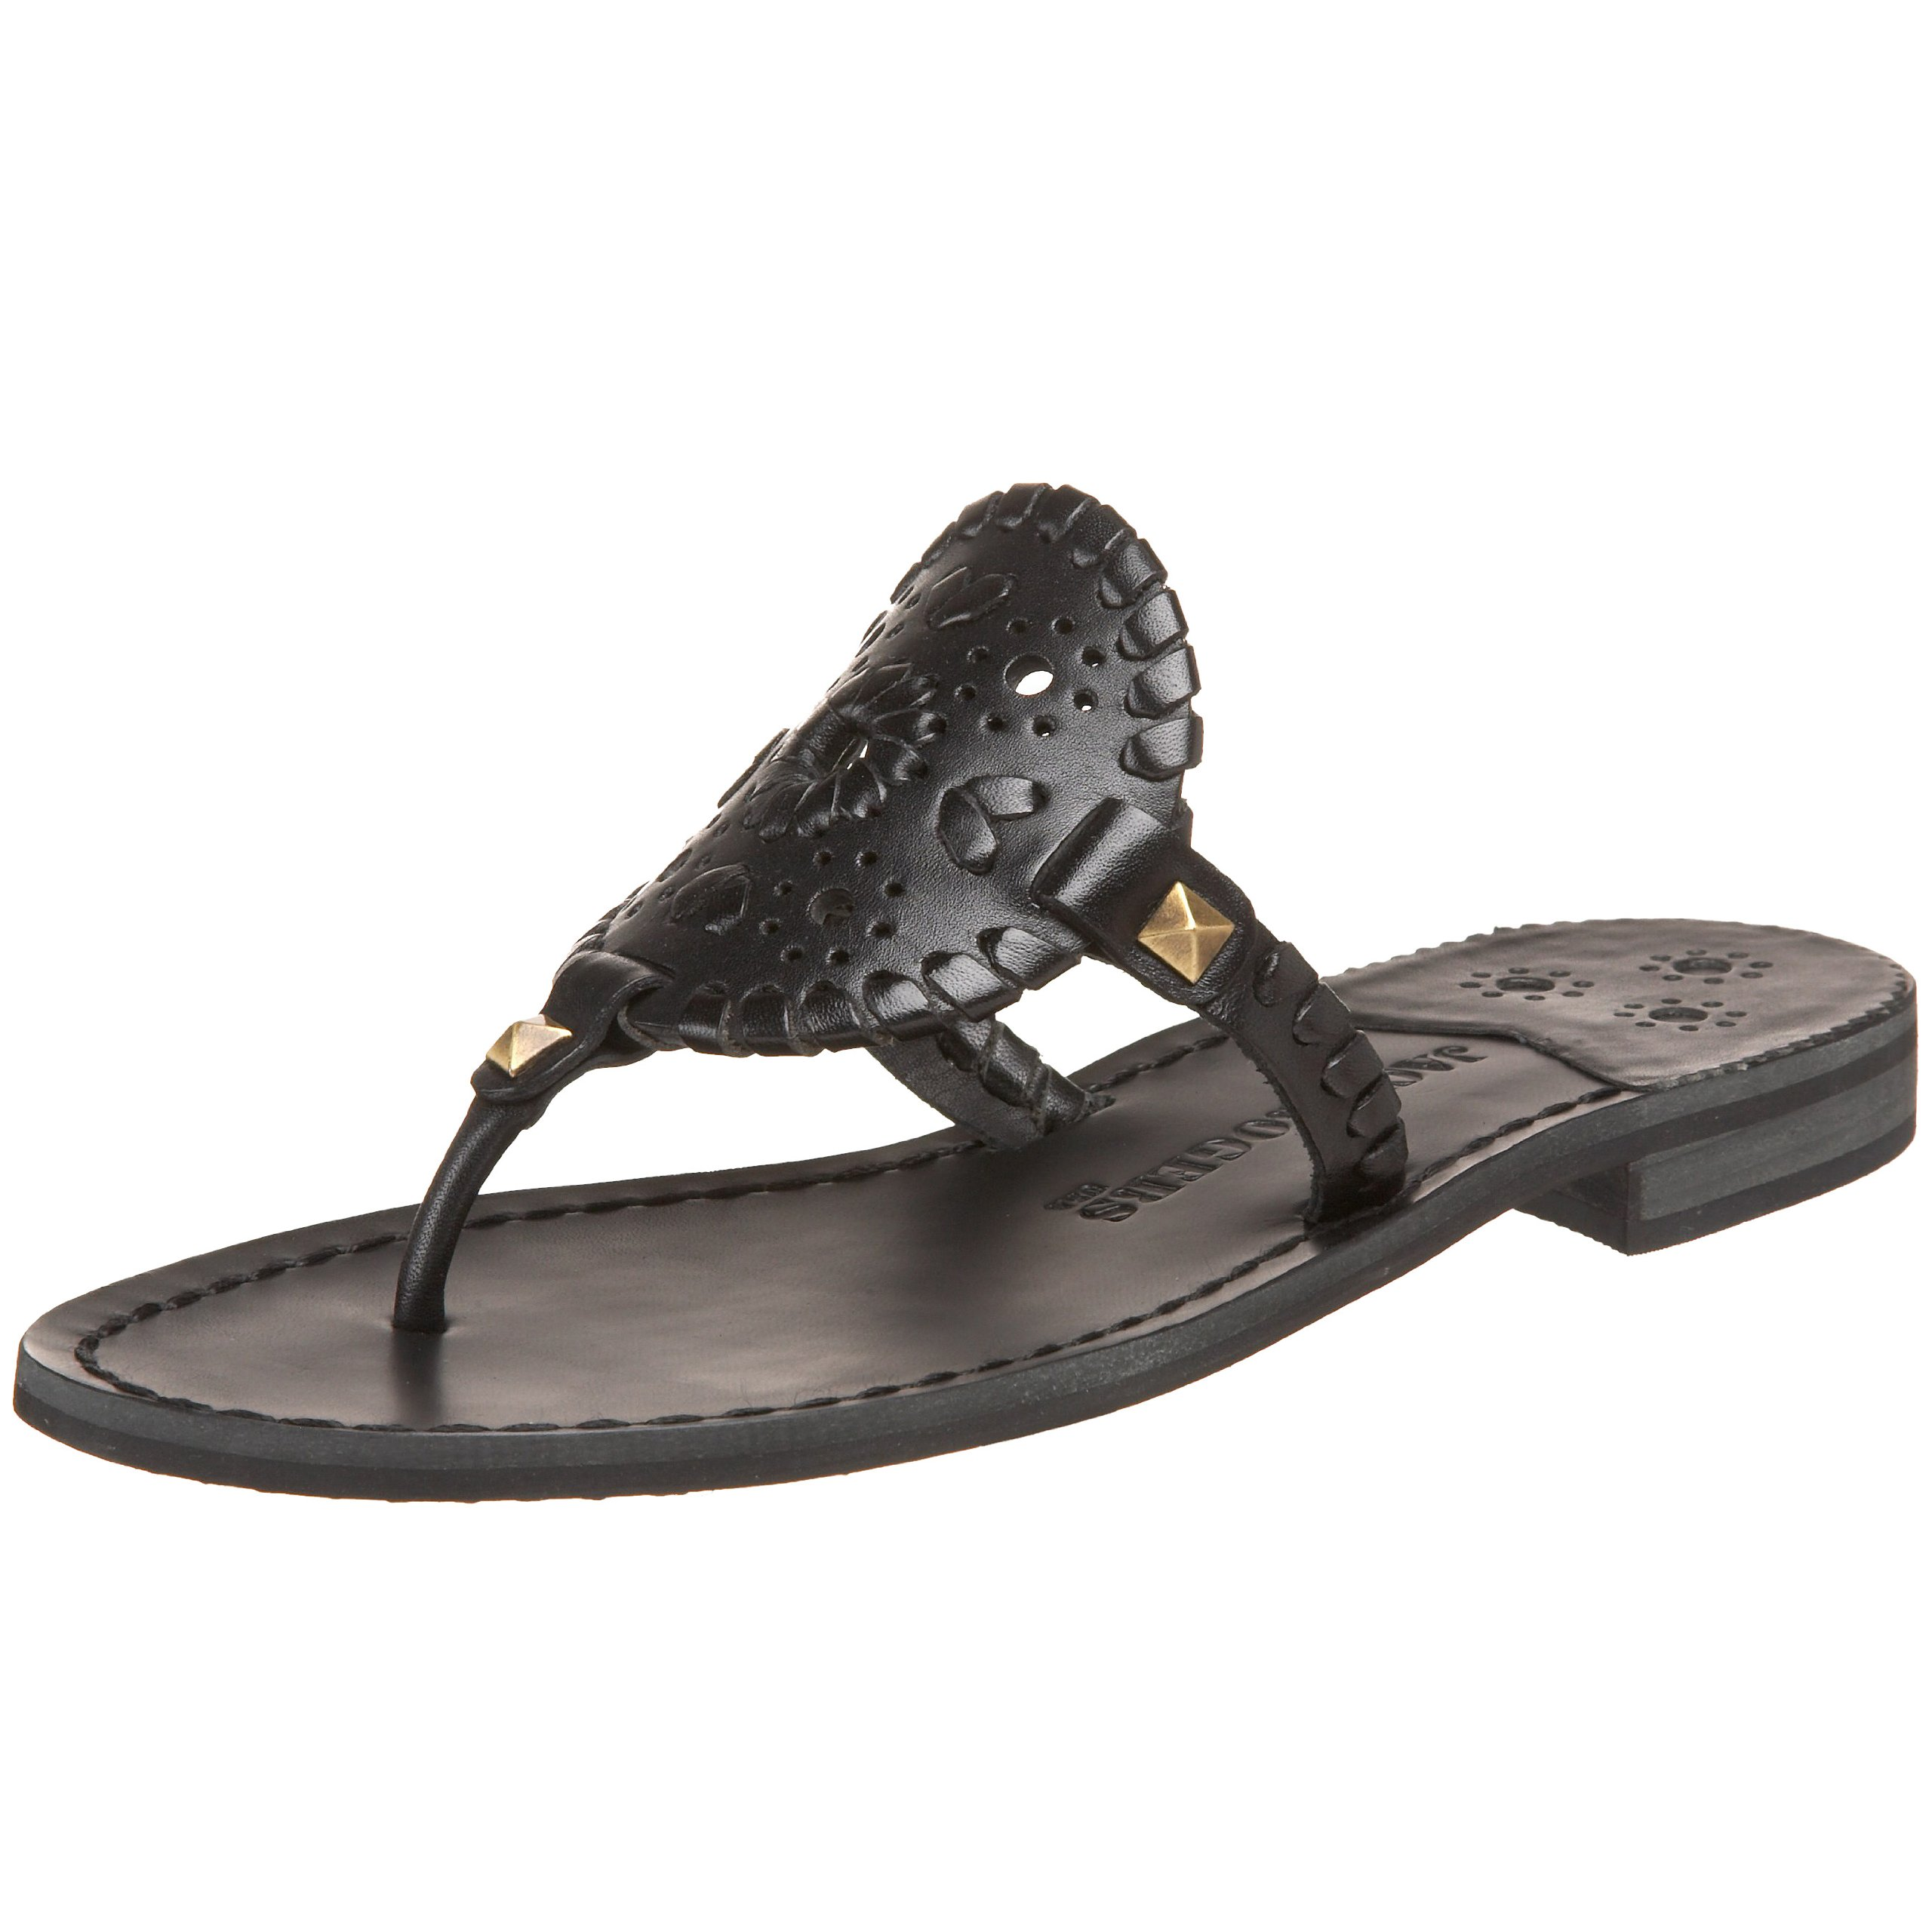 Jack Rogers Women's Georgica Thong Sandal,Black,6 M US